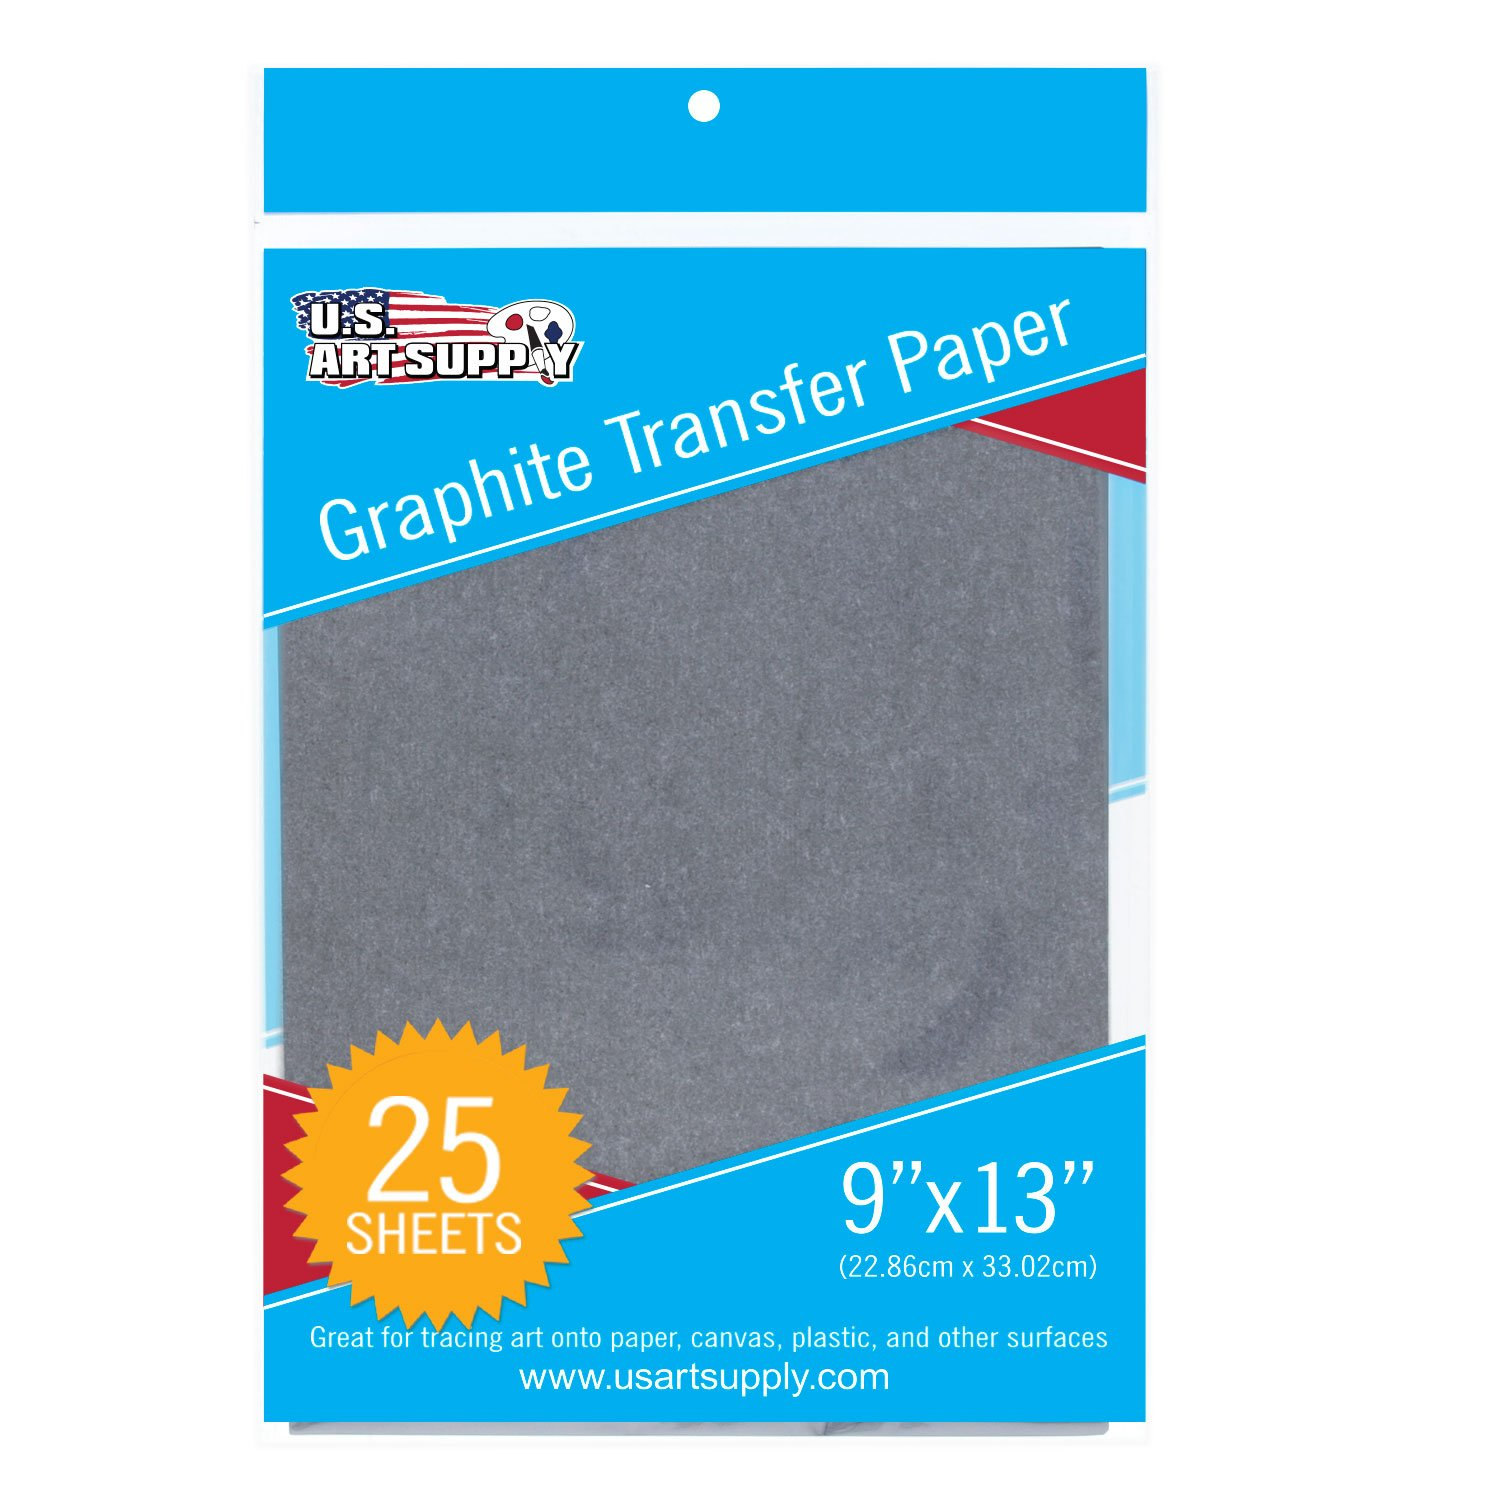 U.S. Art Supply Graphite Carbon Transfer Paper 9 x 13 - 25 Sheets - Black Tracing Paper for all Art Surfaces US Art Supply GTP09X13-25